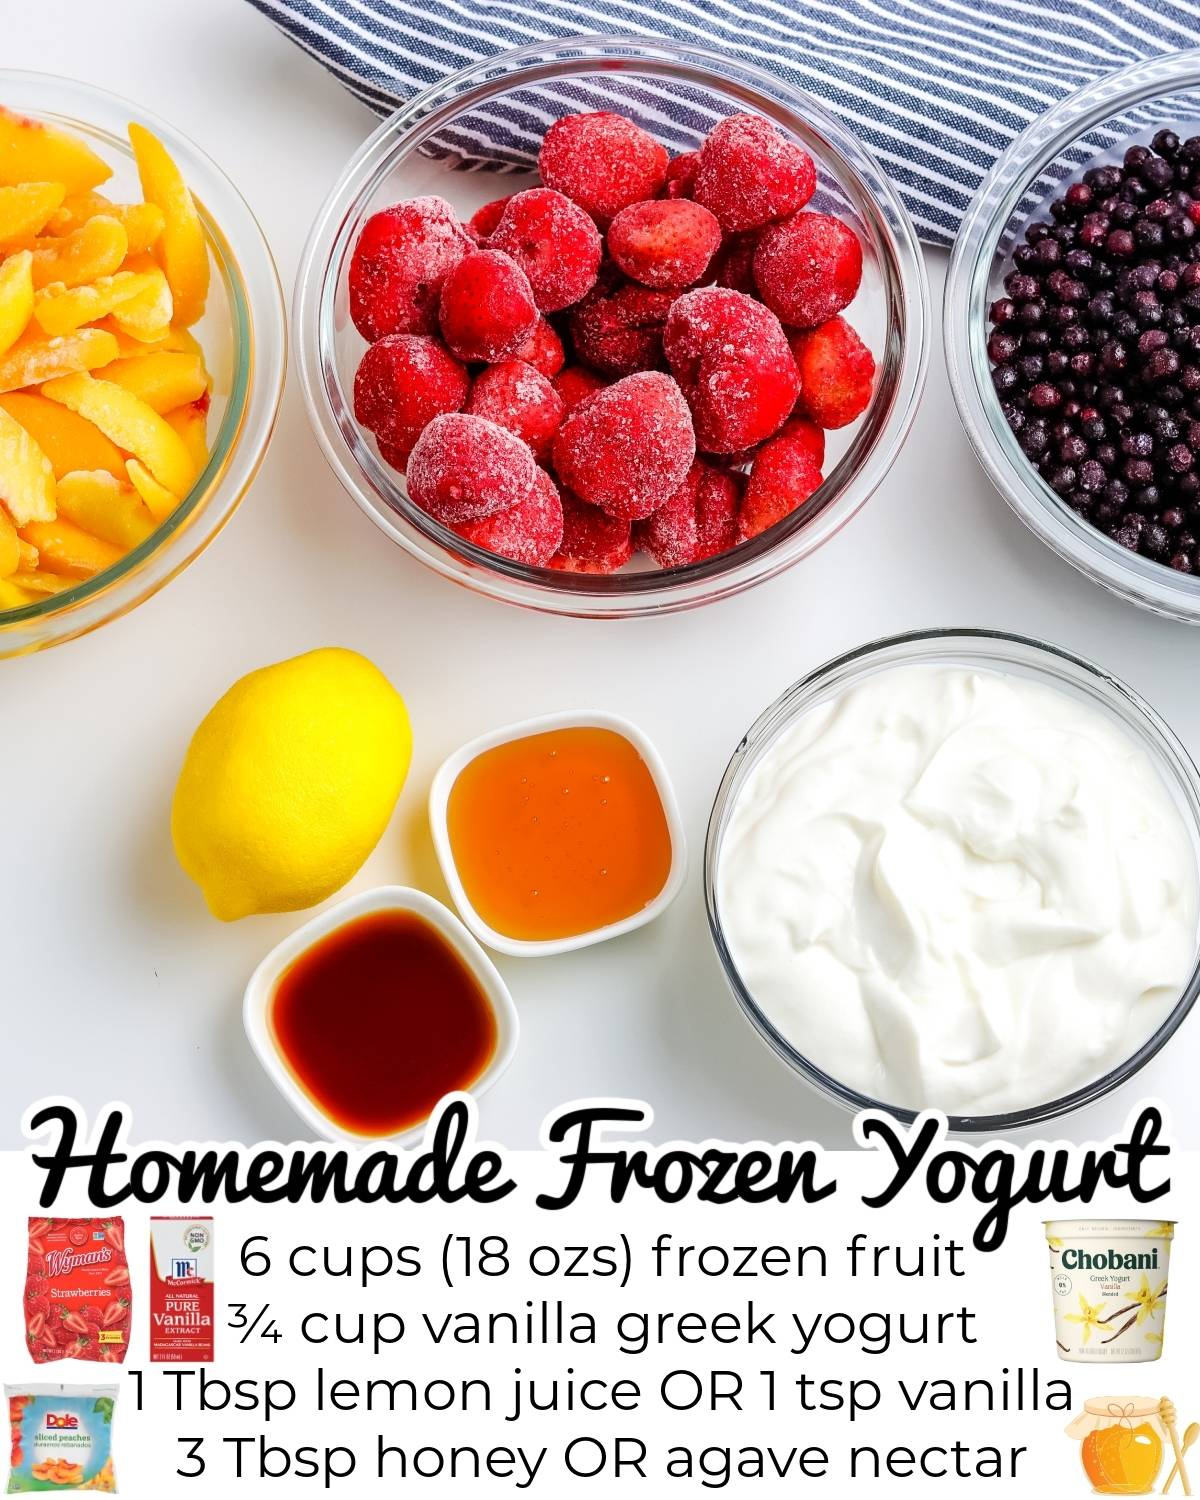 All of the ingredients needed to make this Homemade Frozen Yogurt recipe.